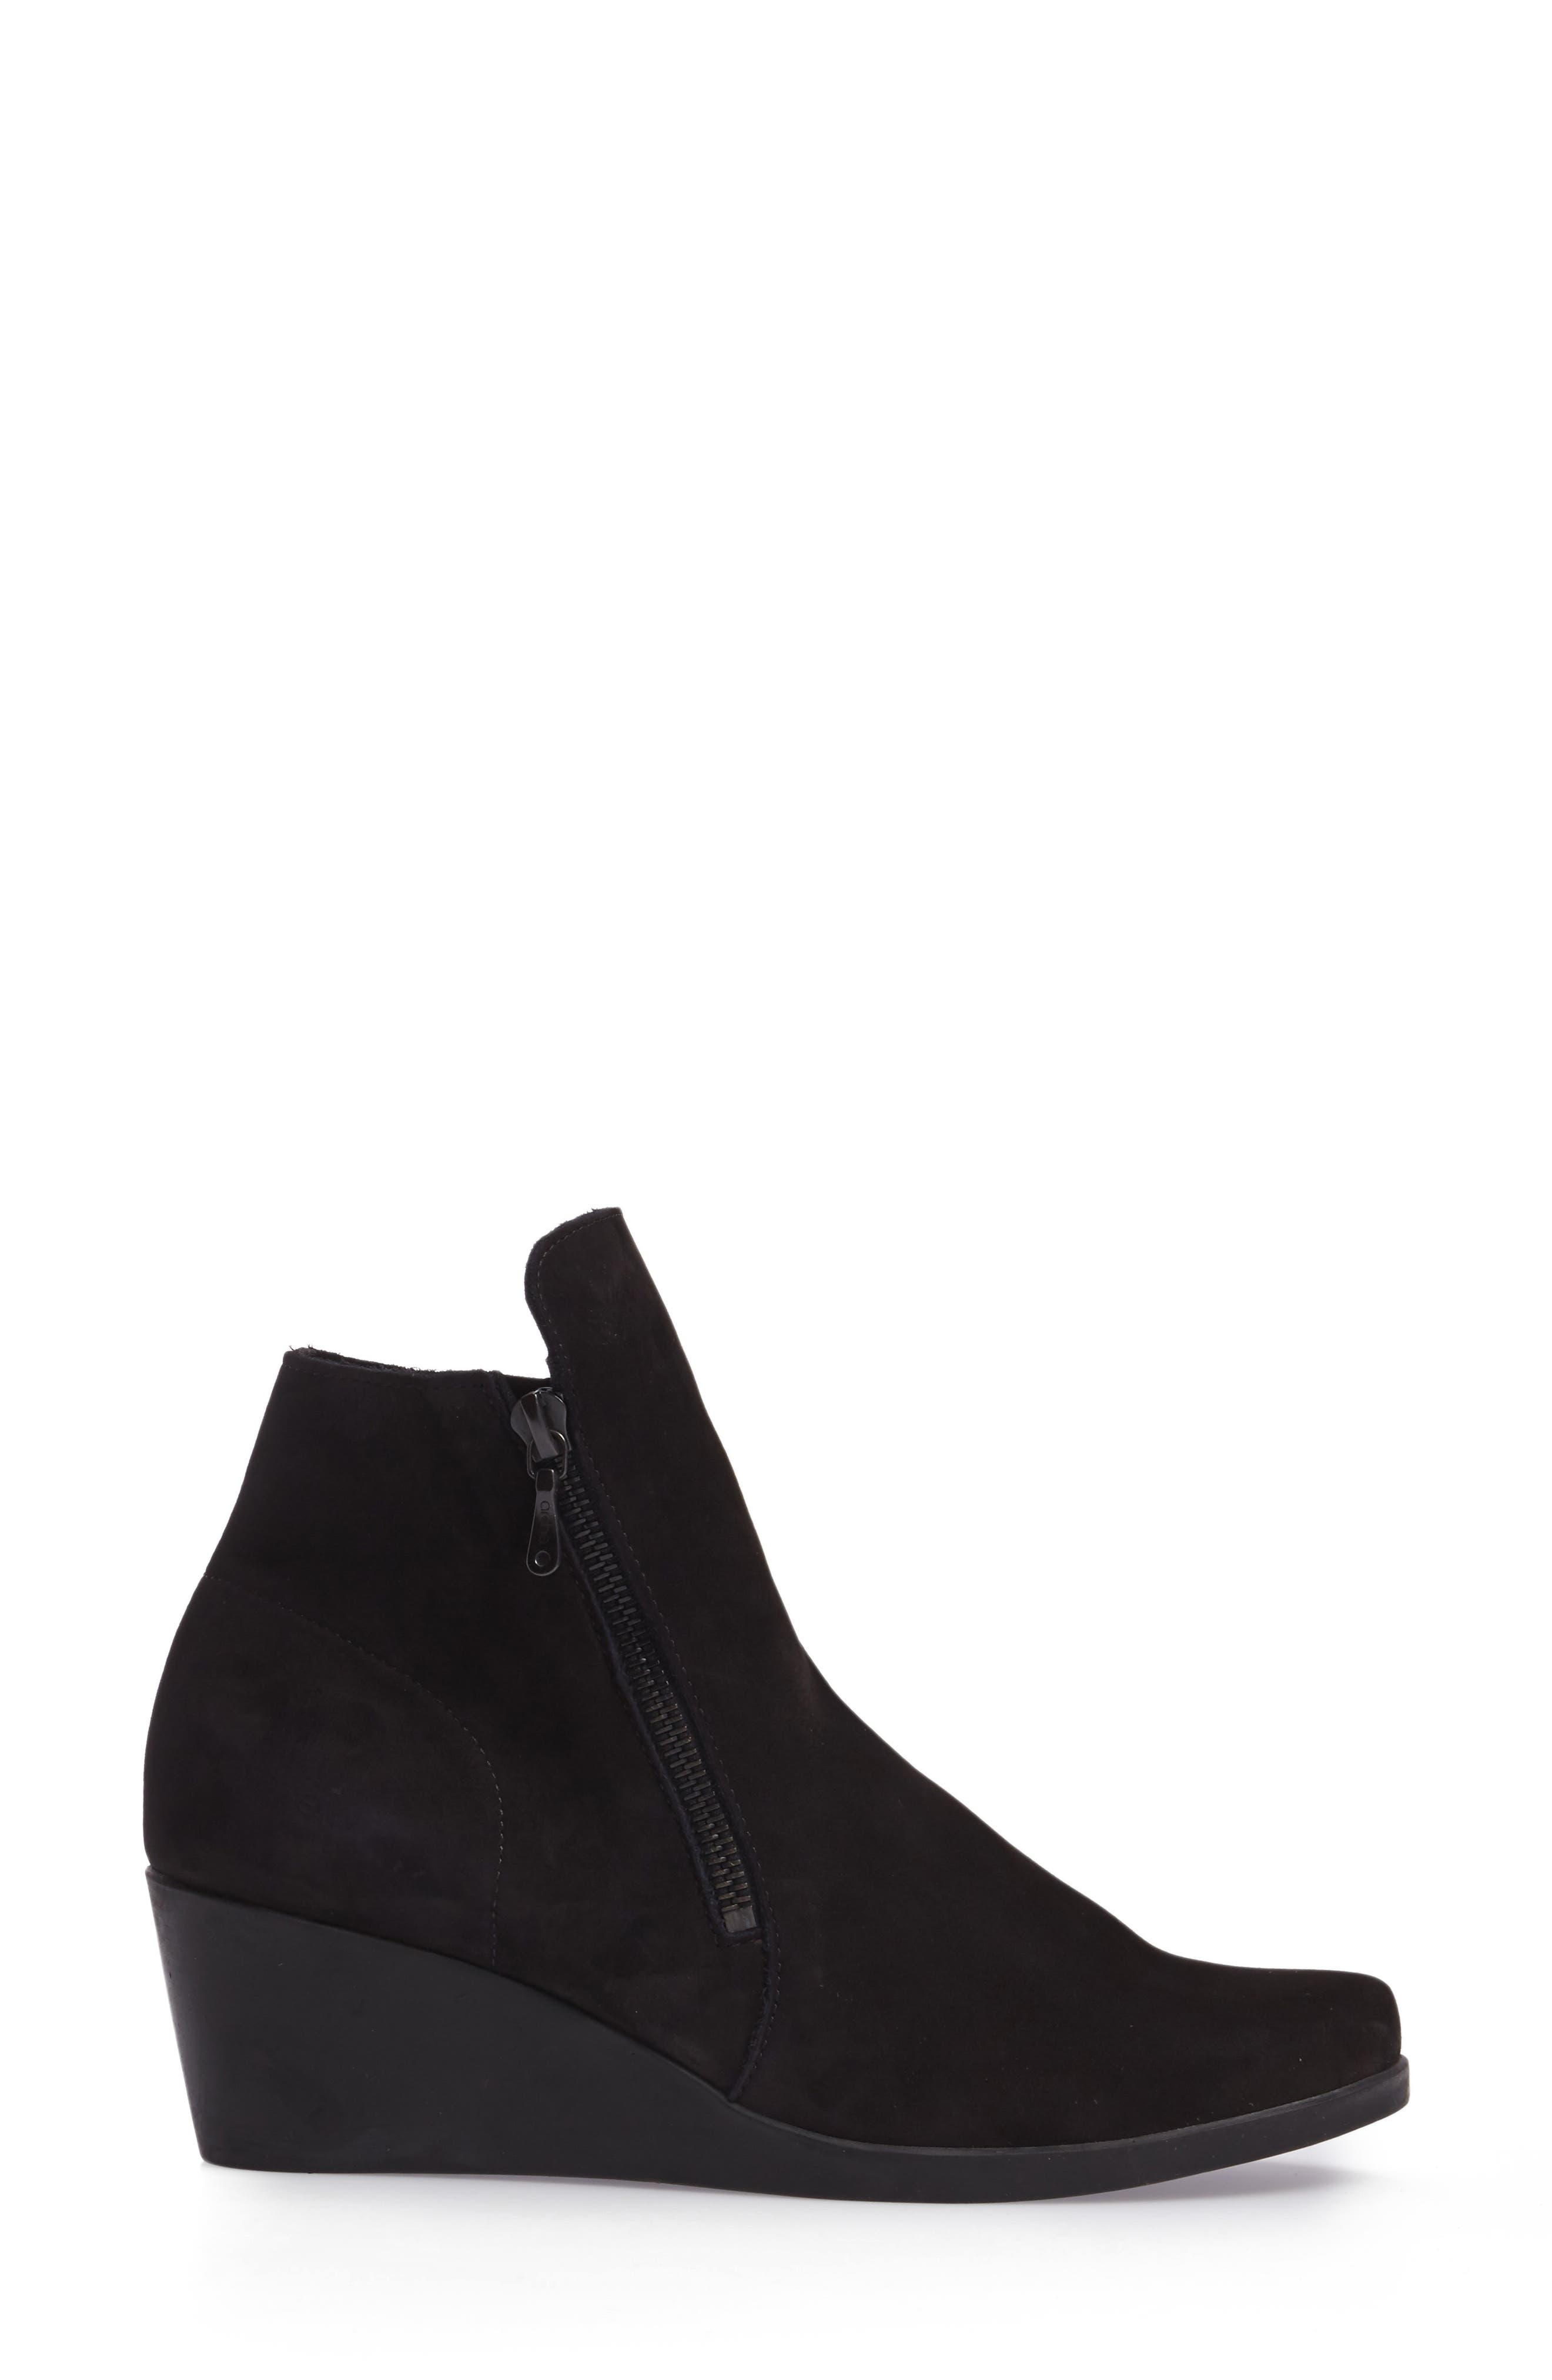 Alternate Image 3  - Arche Jolia Water Resistant Bootie (Women)